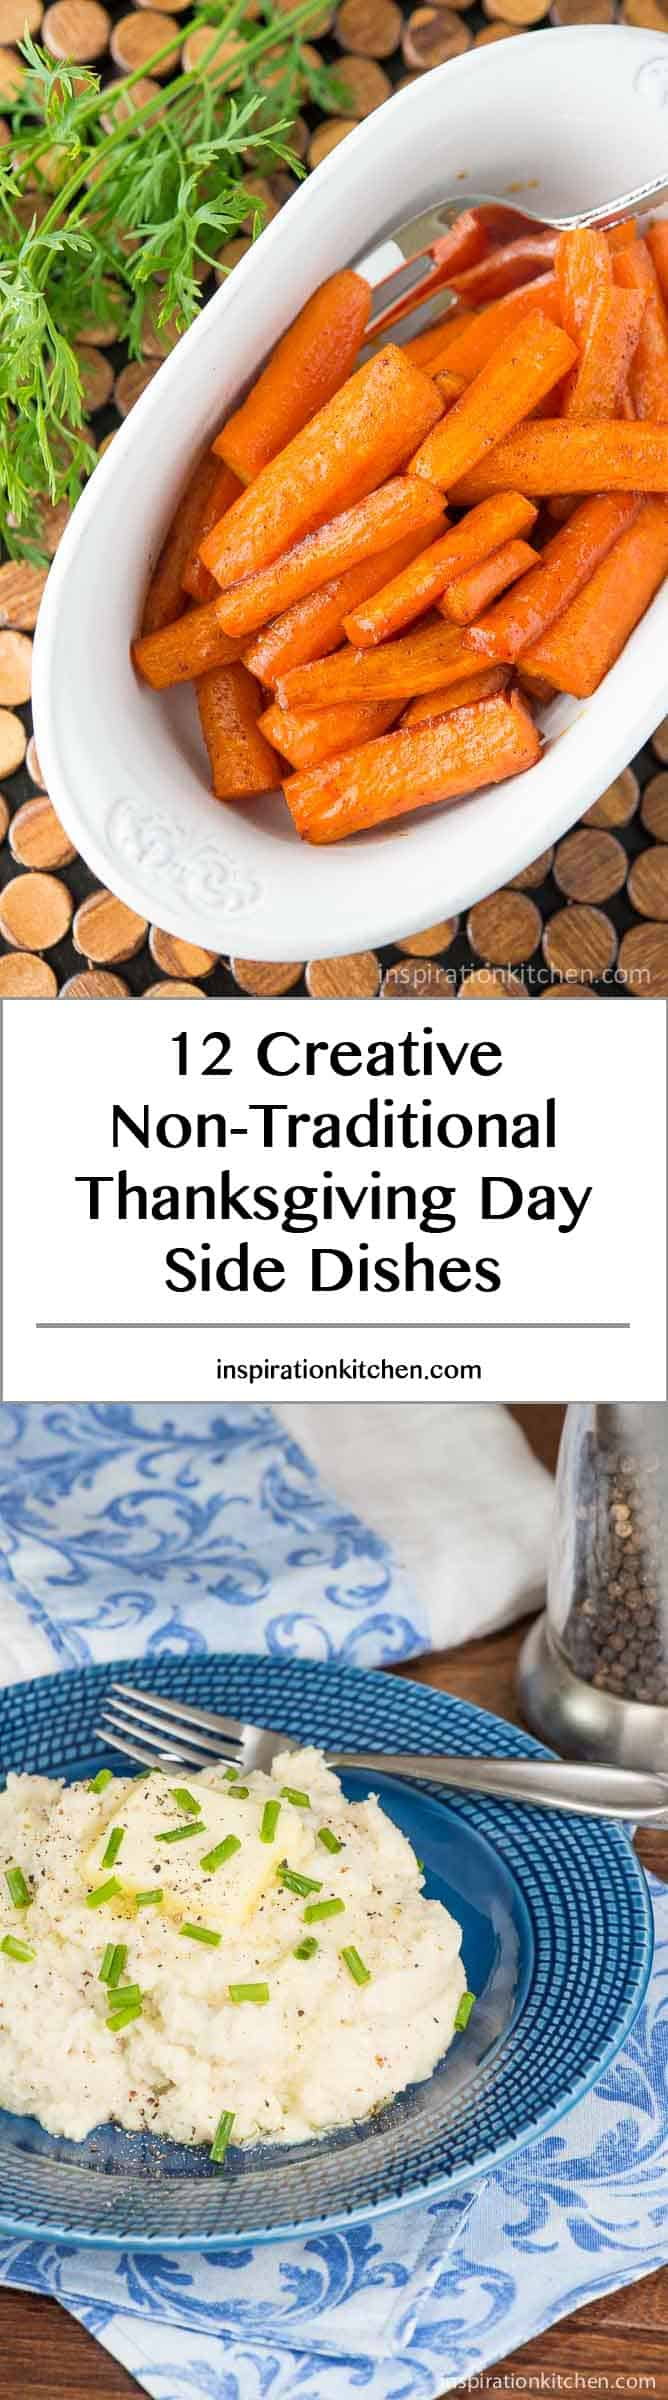 12 Creative Non-Traditional Thanksgiving Day Side Dishes - Inspiration Kitchen